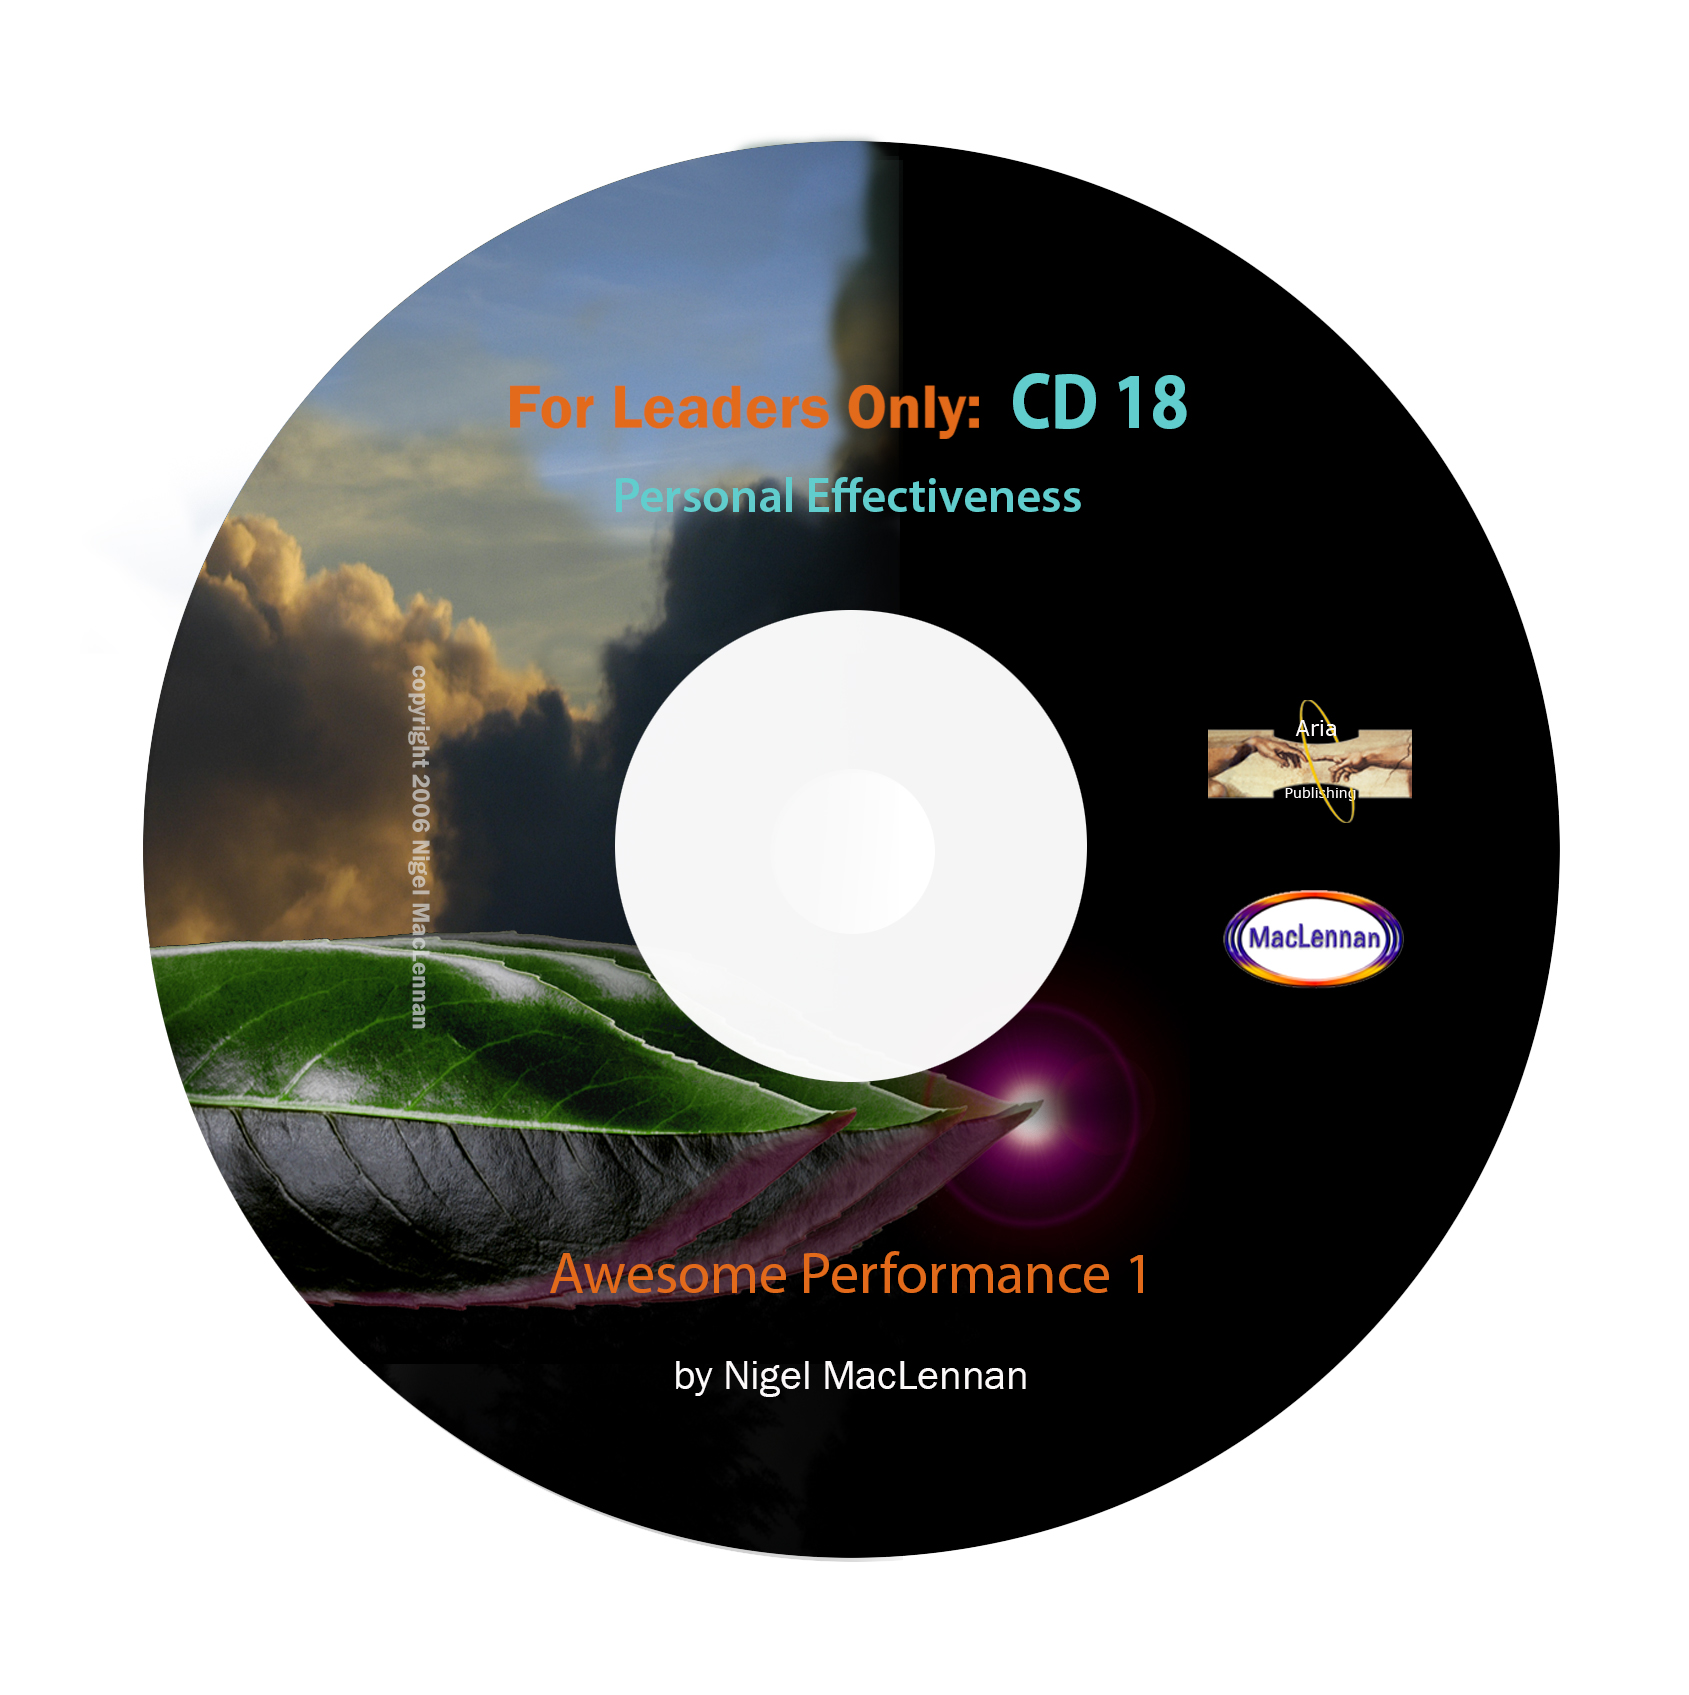 For Leaders Only - Awesome Performance 1 CD